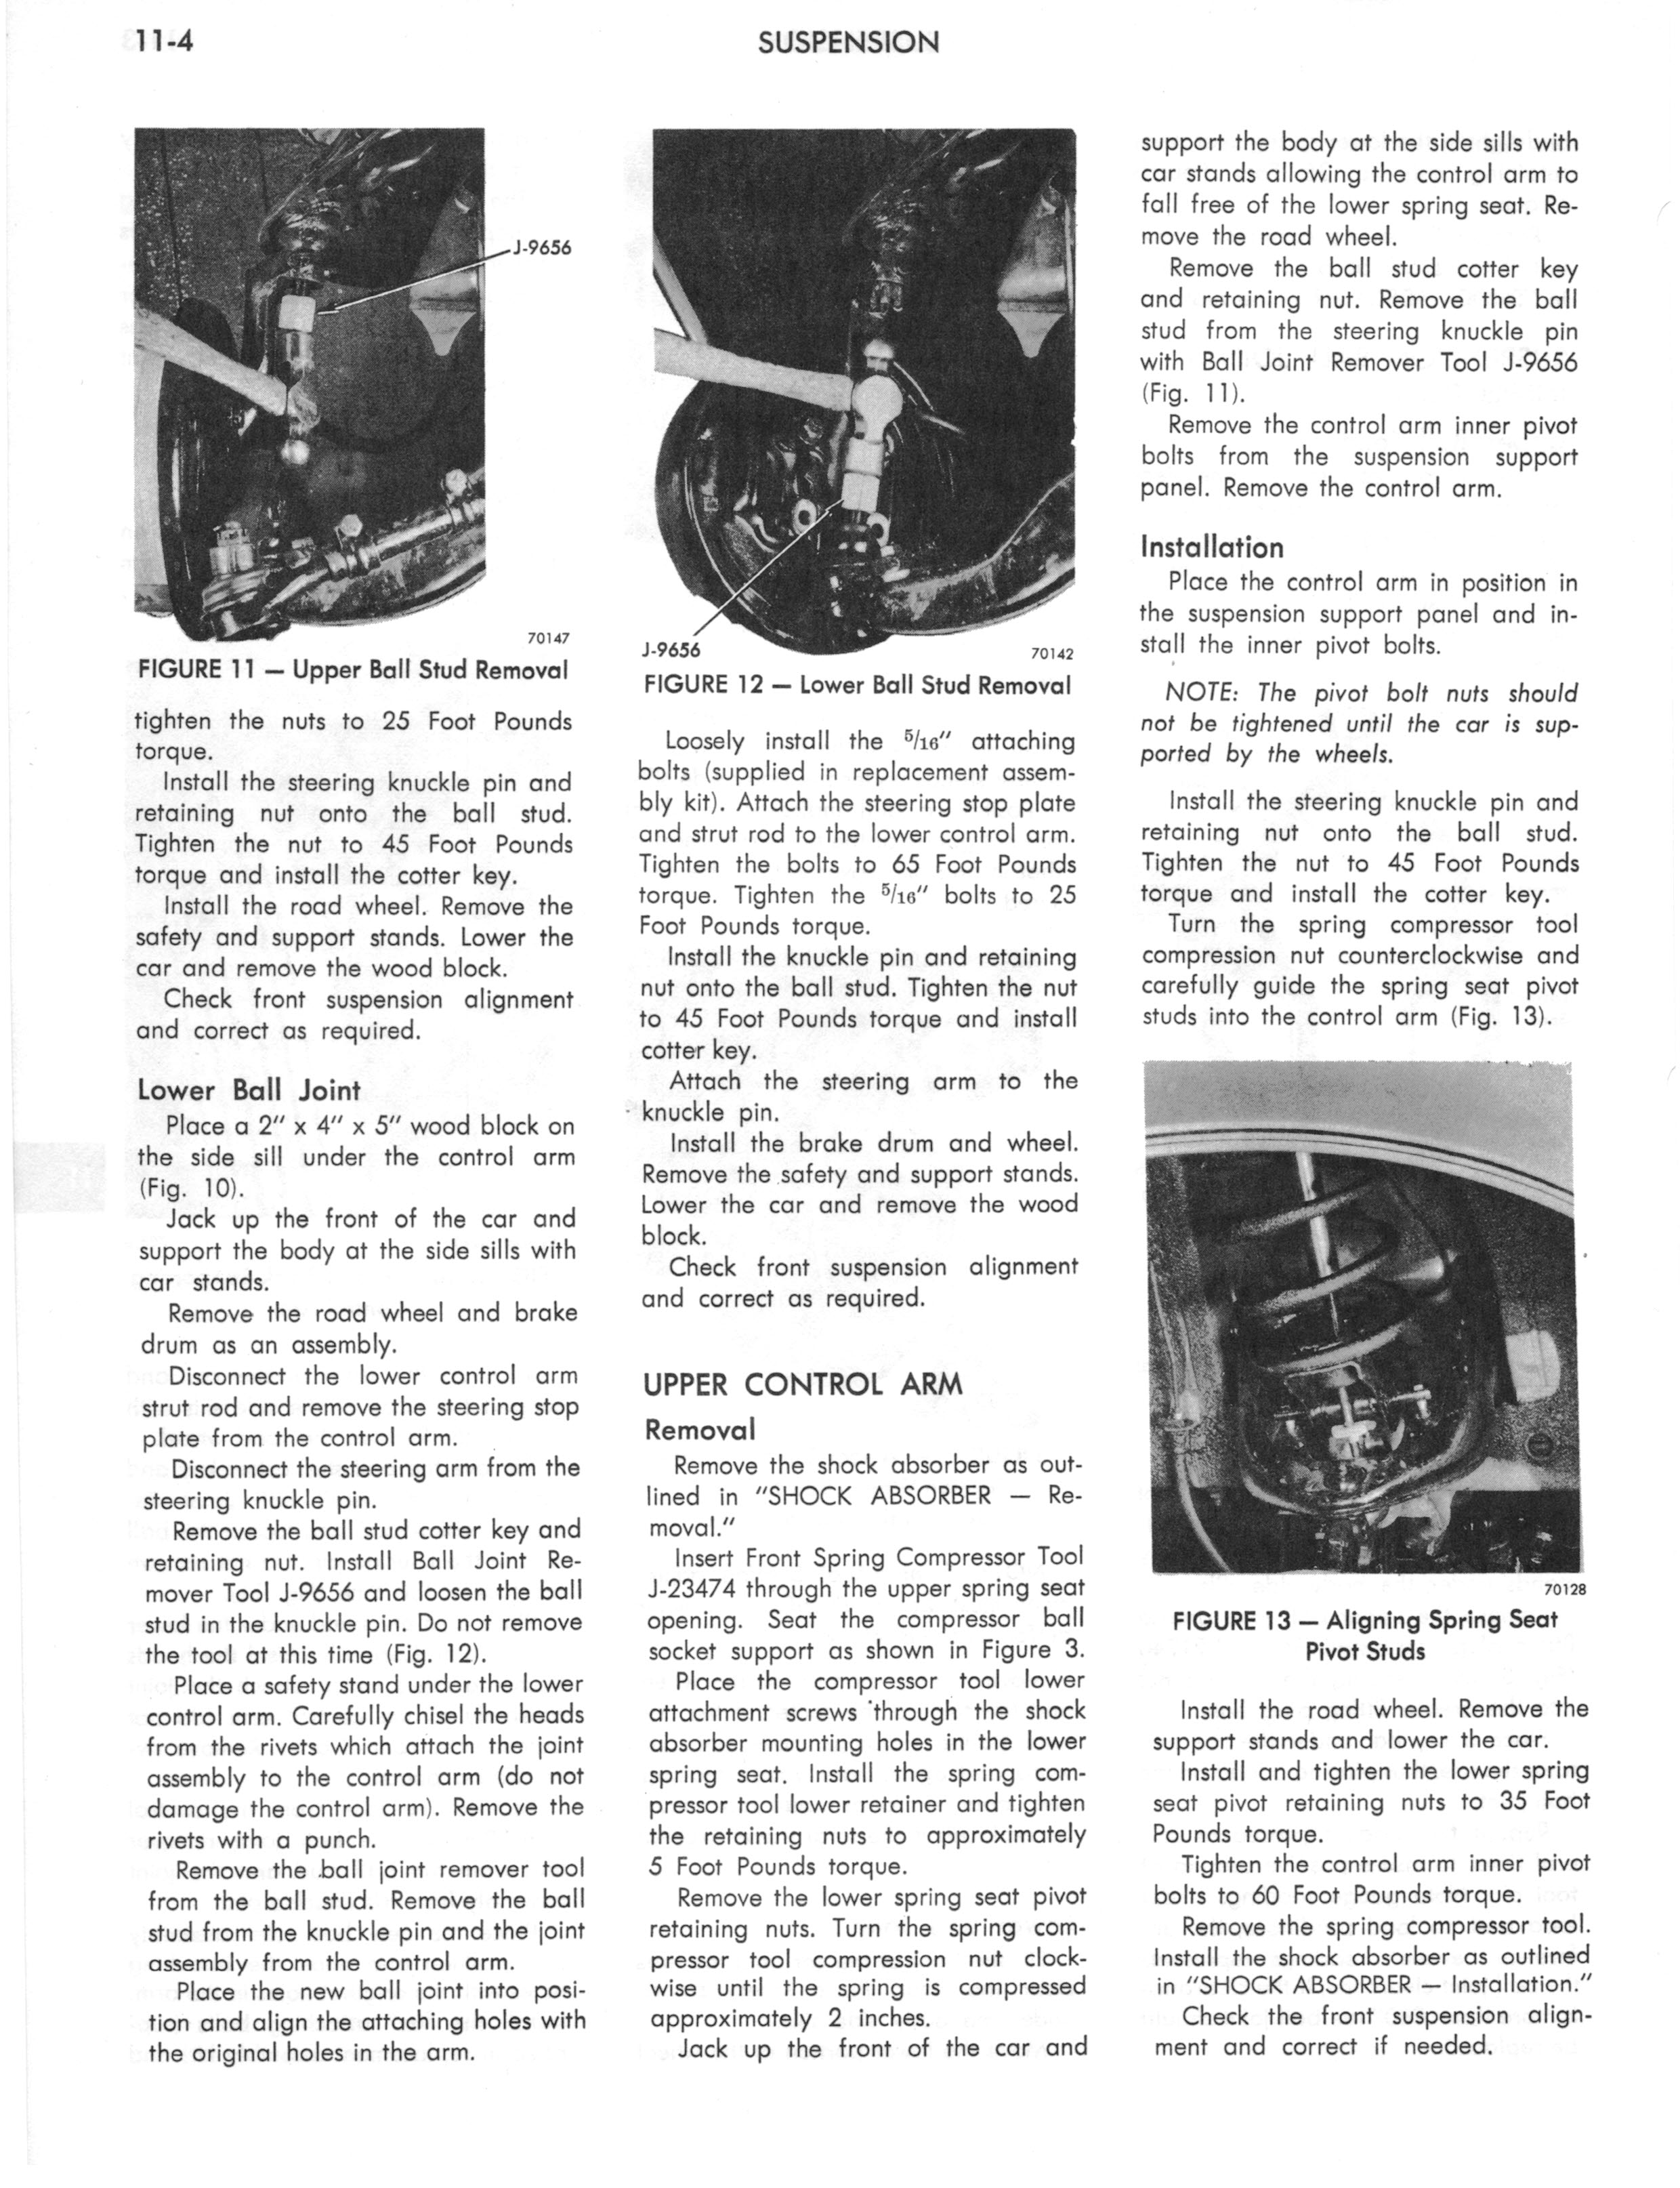 1973 AMC Technical Service Manual page 332 of 487